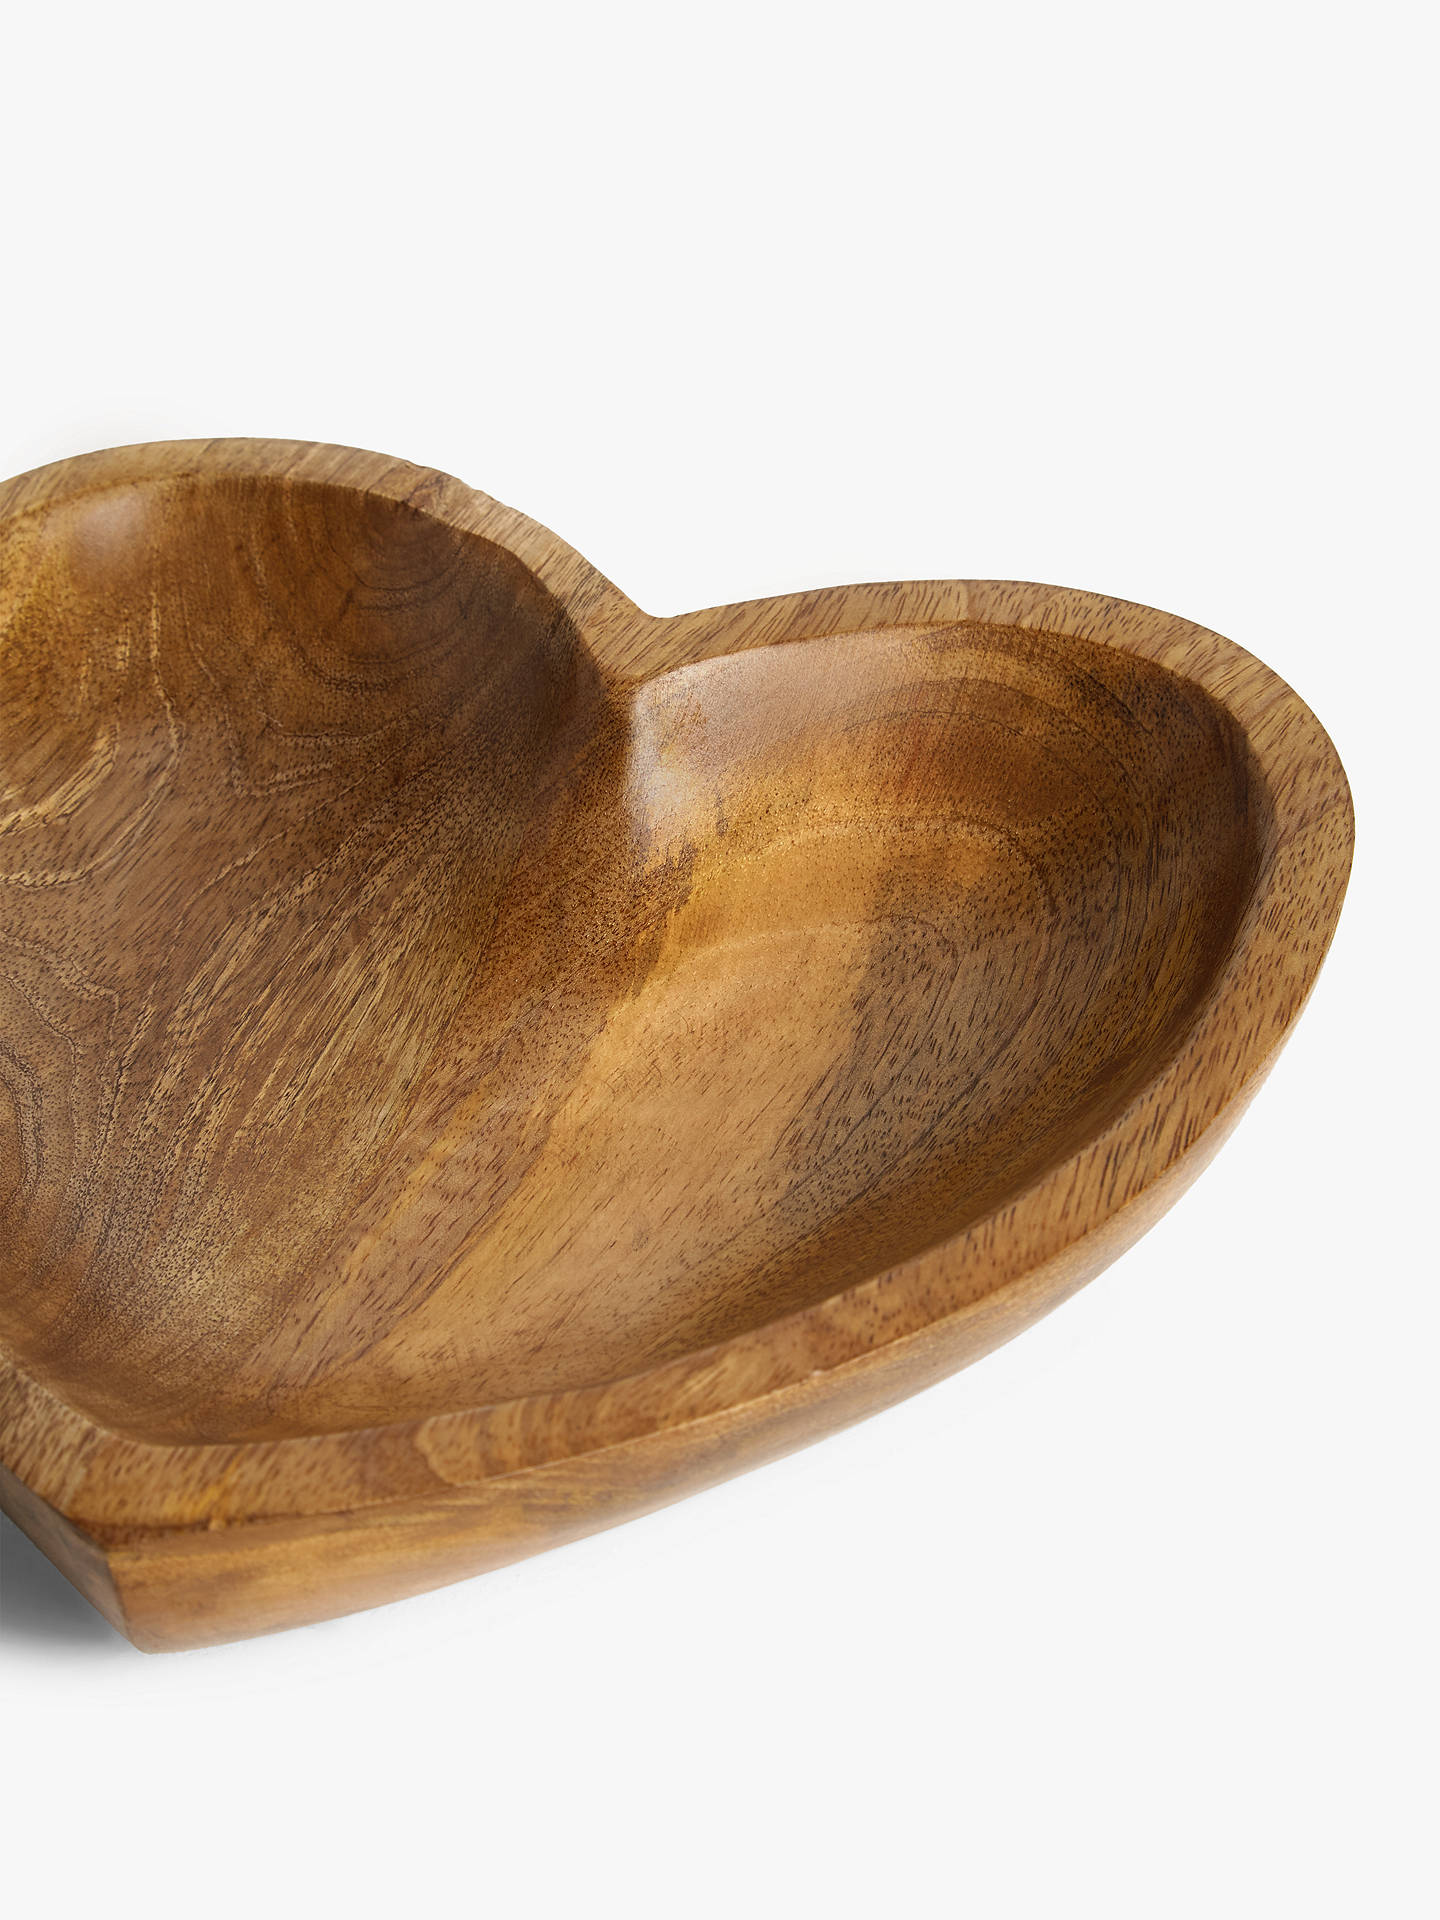 Buy John Lewis & Partners Large Mango Wood Heart Bowl, 25cm, Natural Online at johnlewis.com